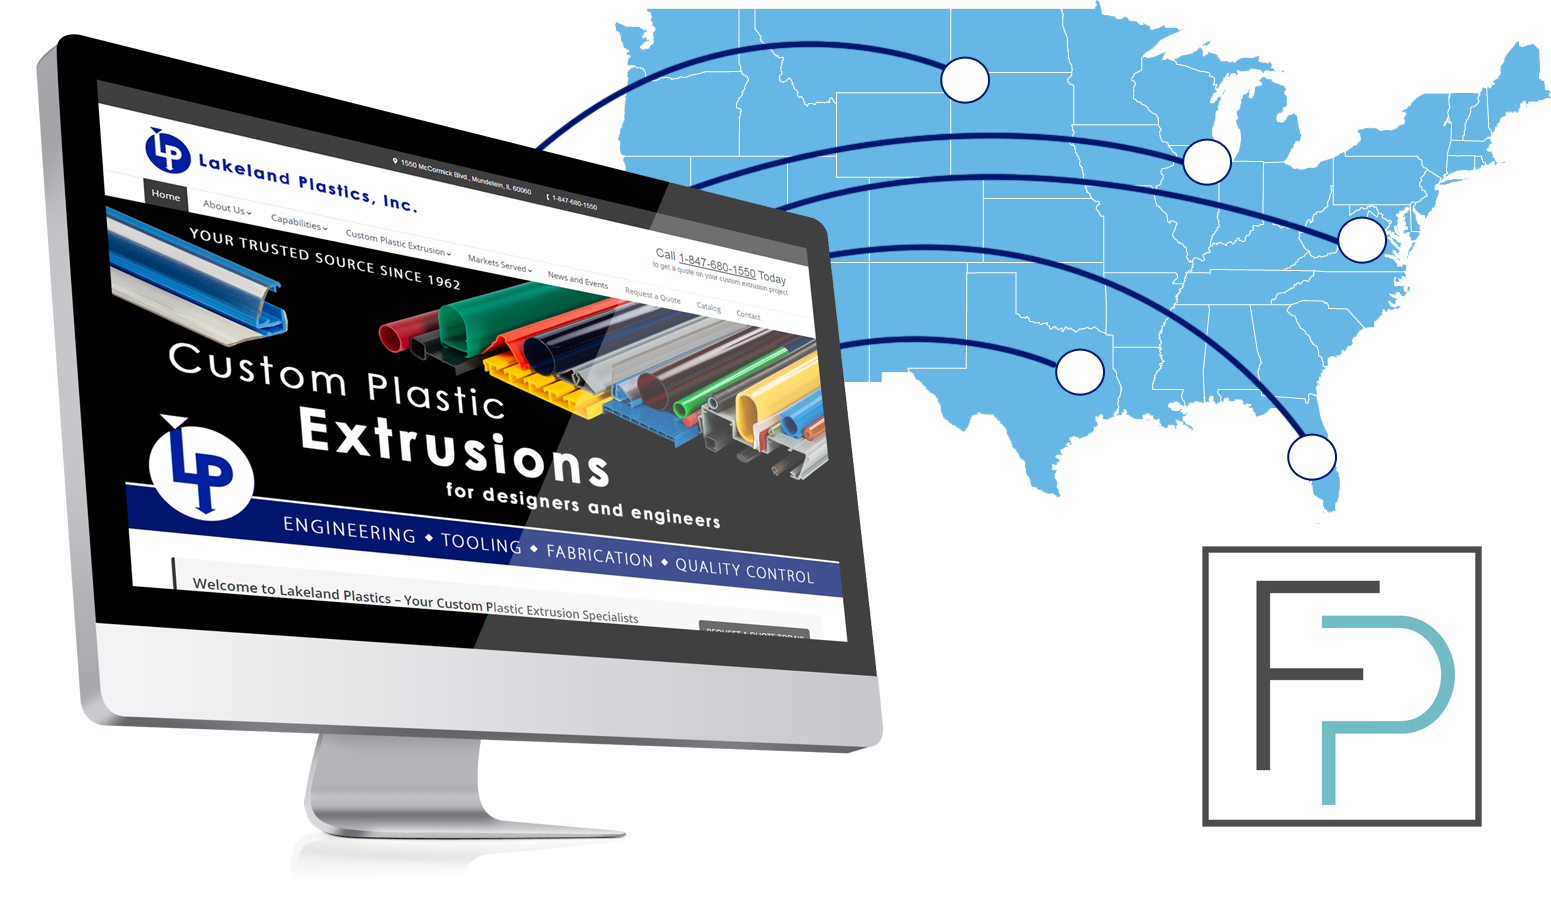 Turn Key Online Marketing Solutions for Business